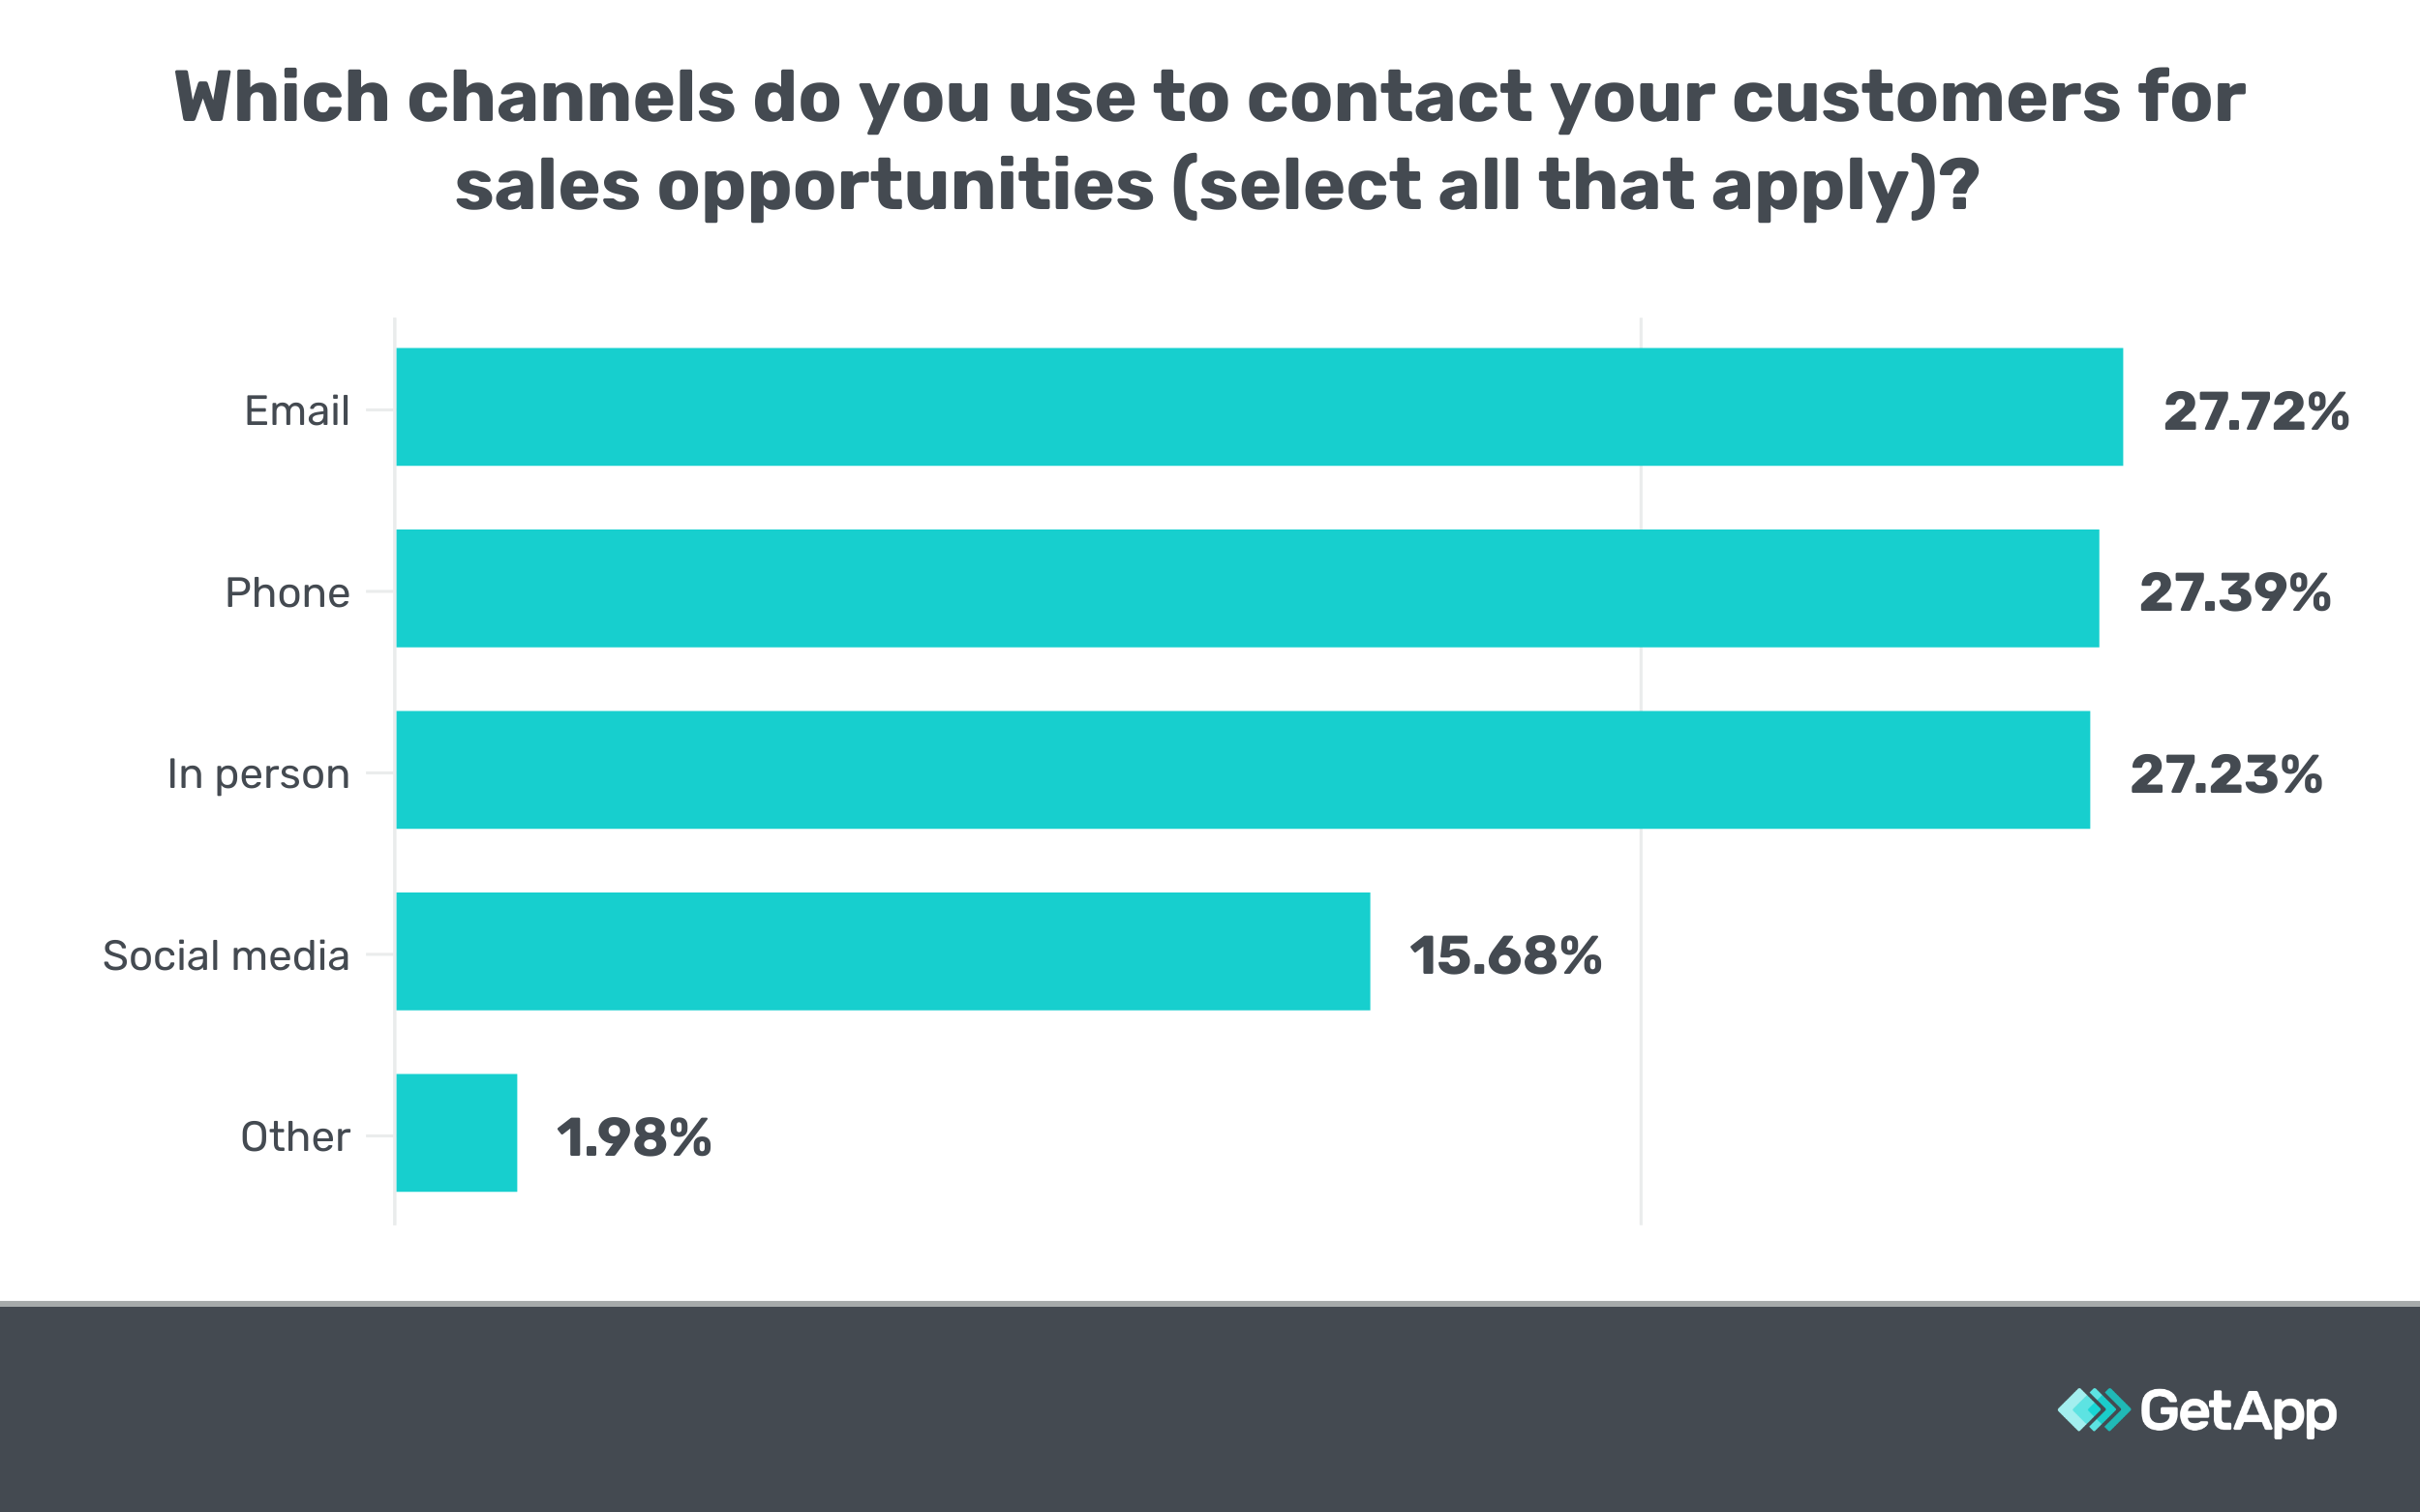 Which channels do you use to contact your customers for sales opportunities